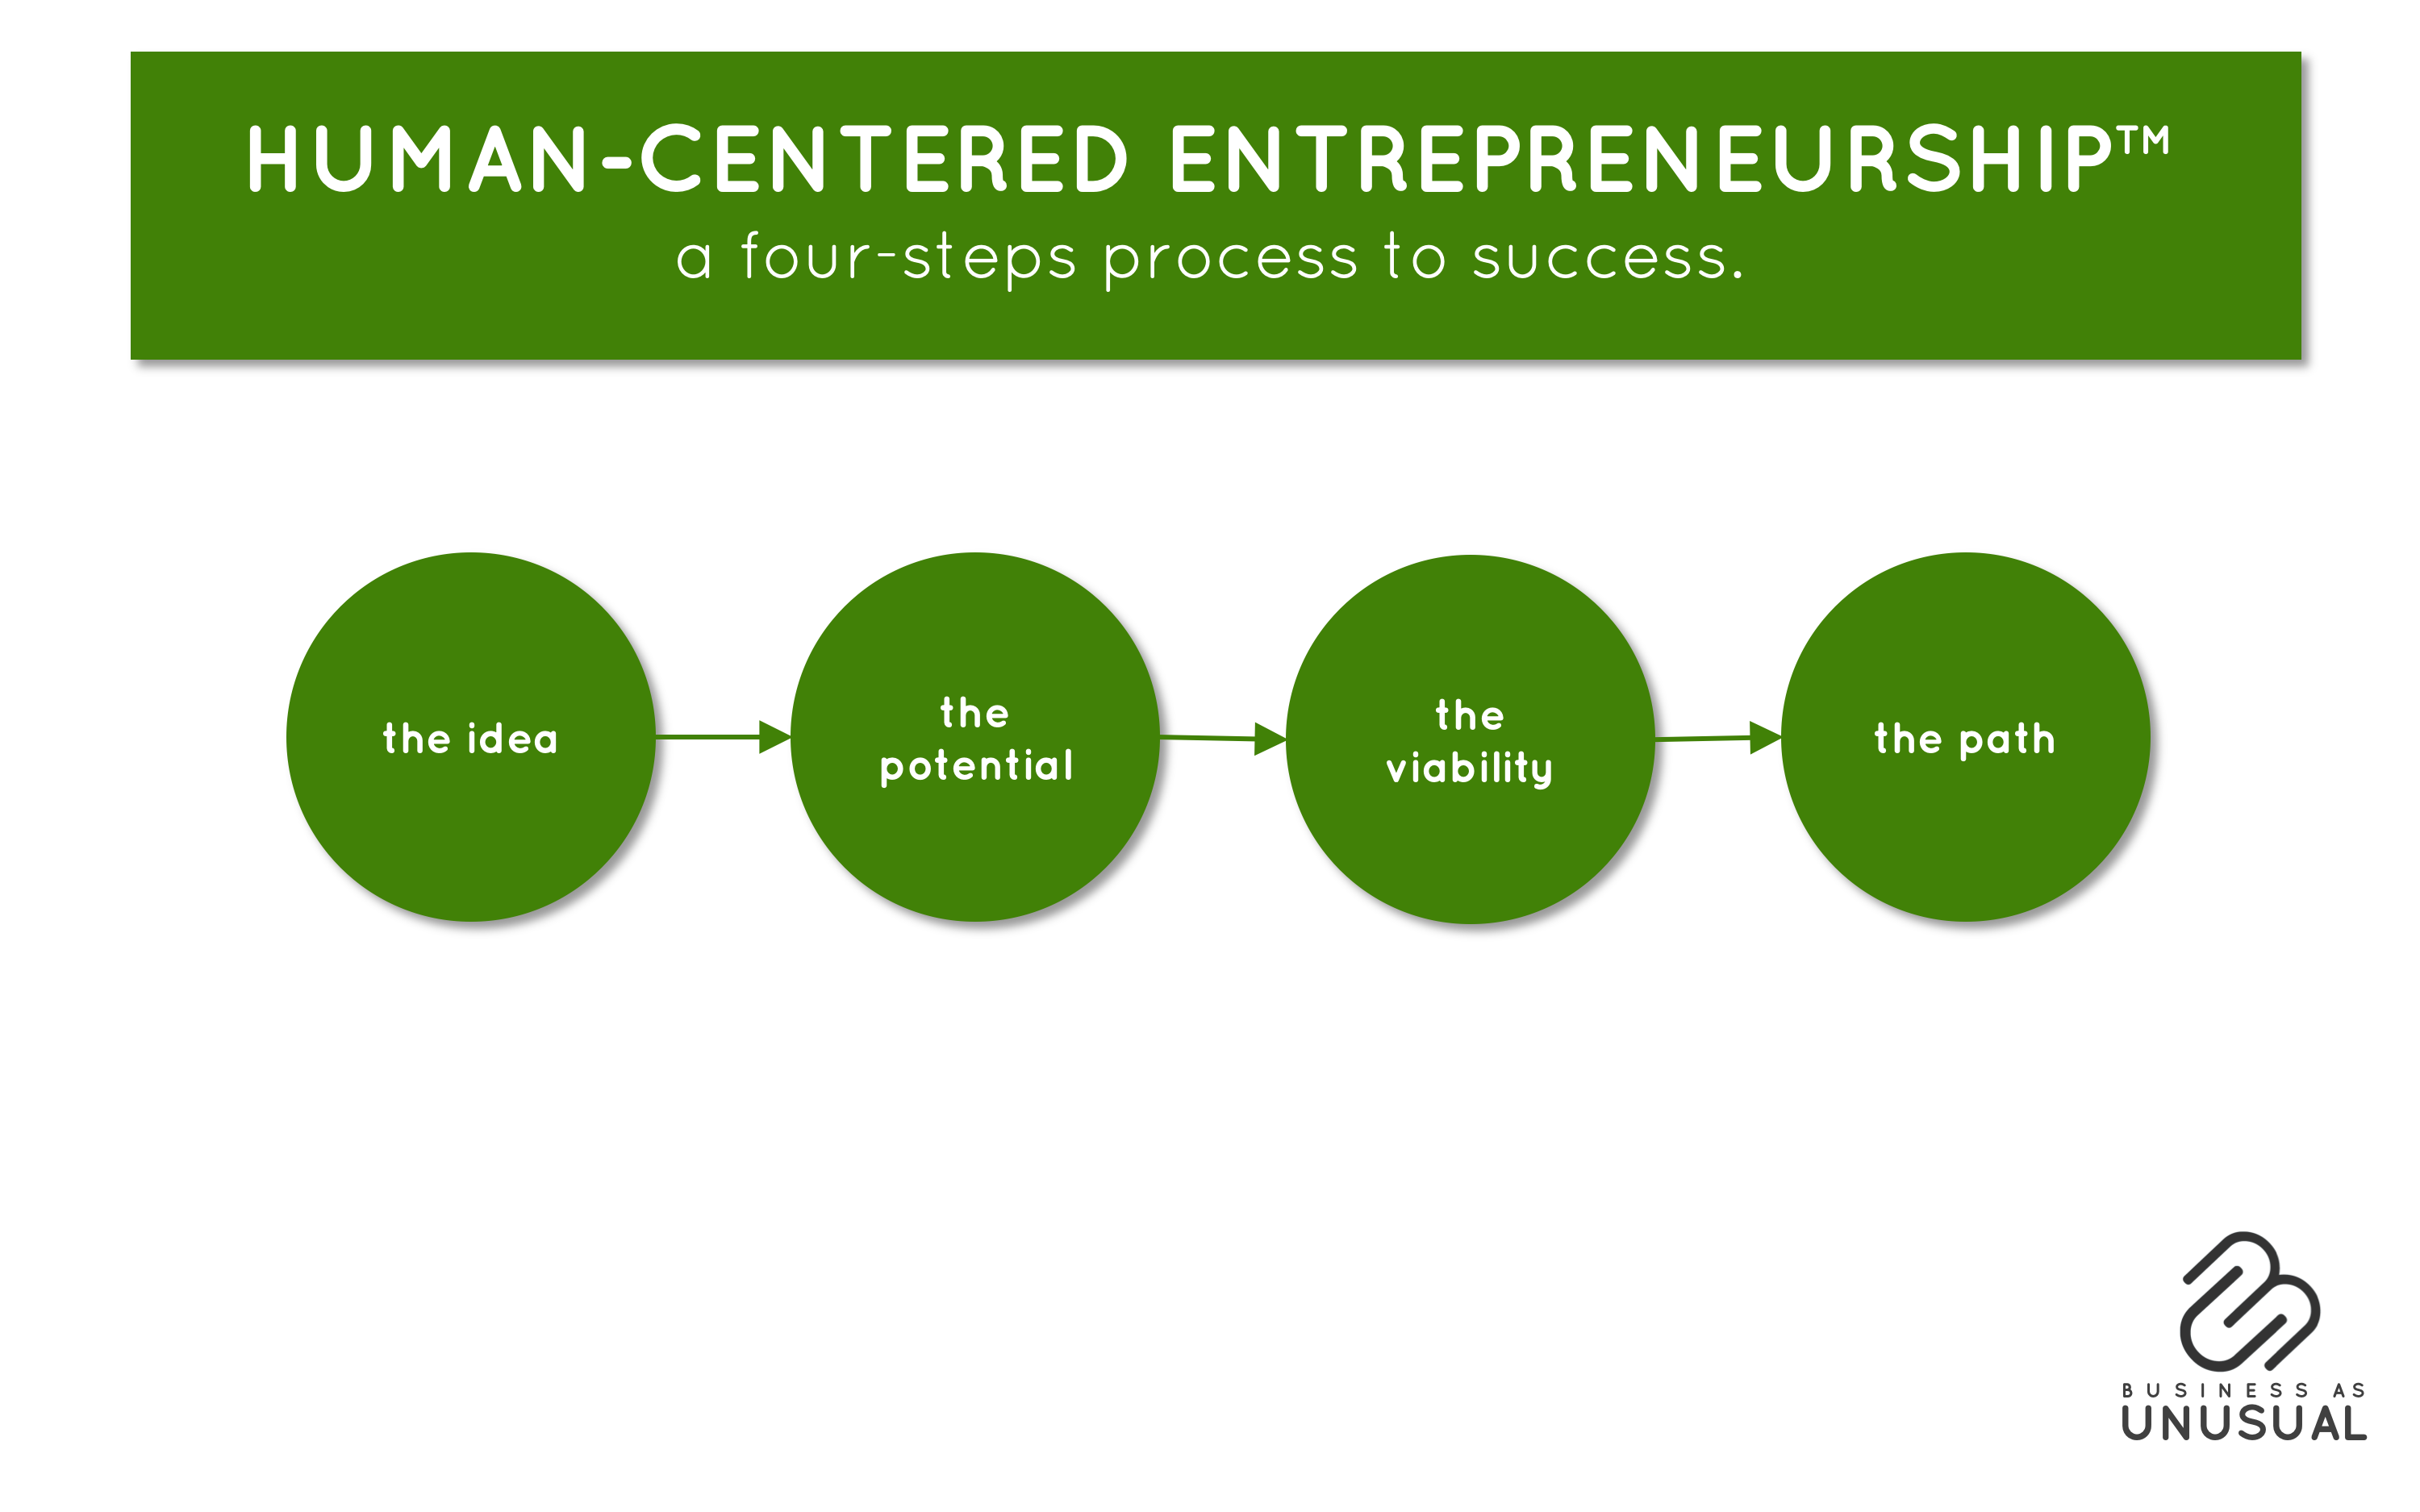 Human-Centered Entrepreneurship 4 steps